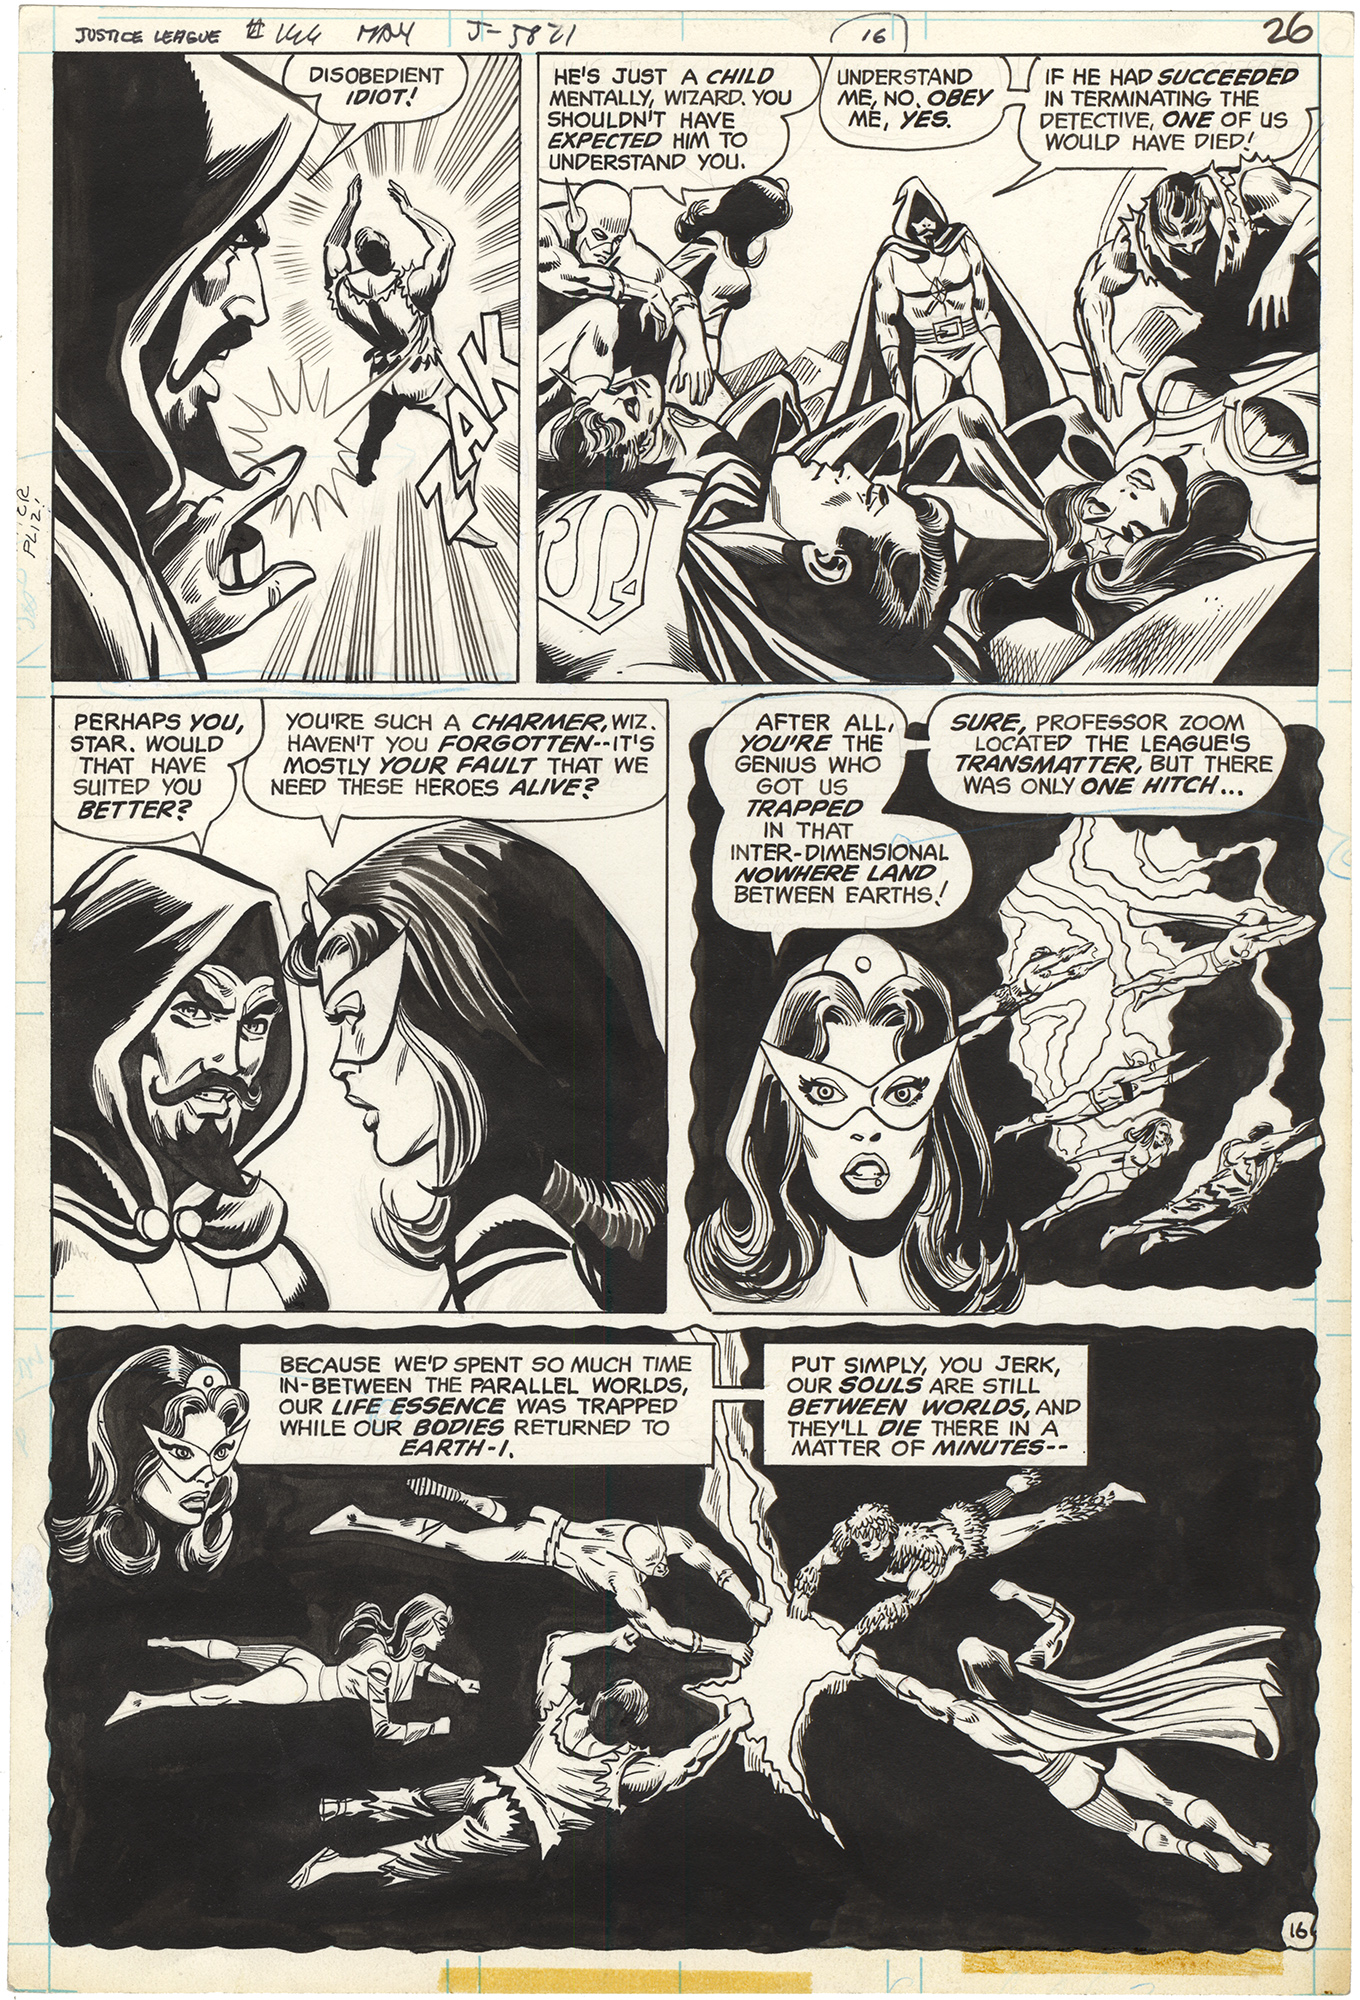 Justice League of America #166 p16